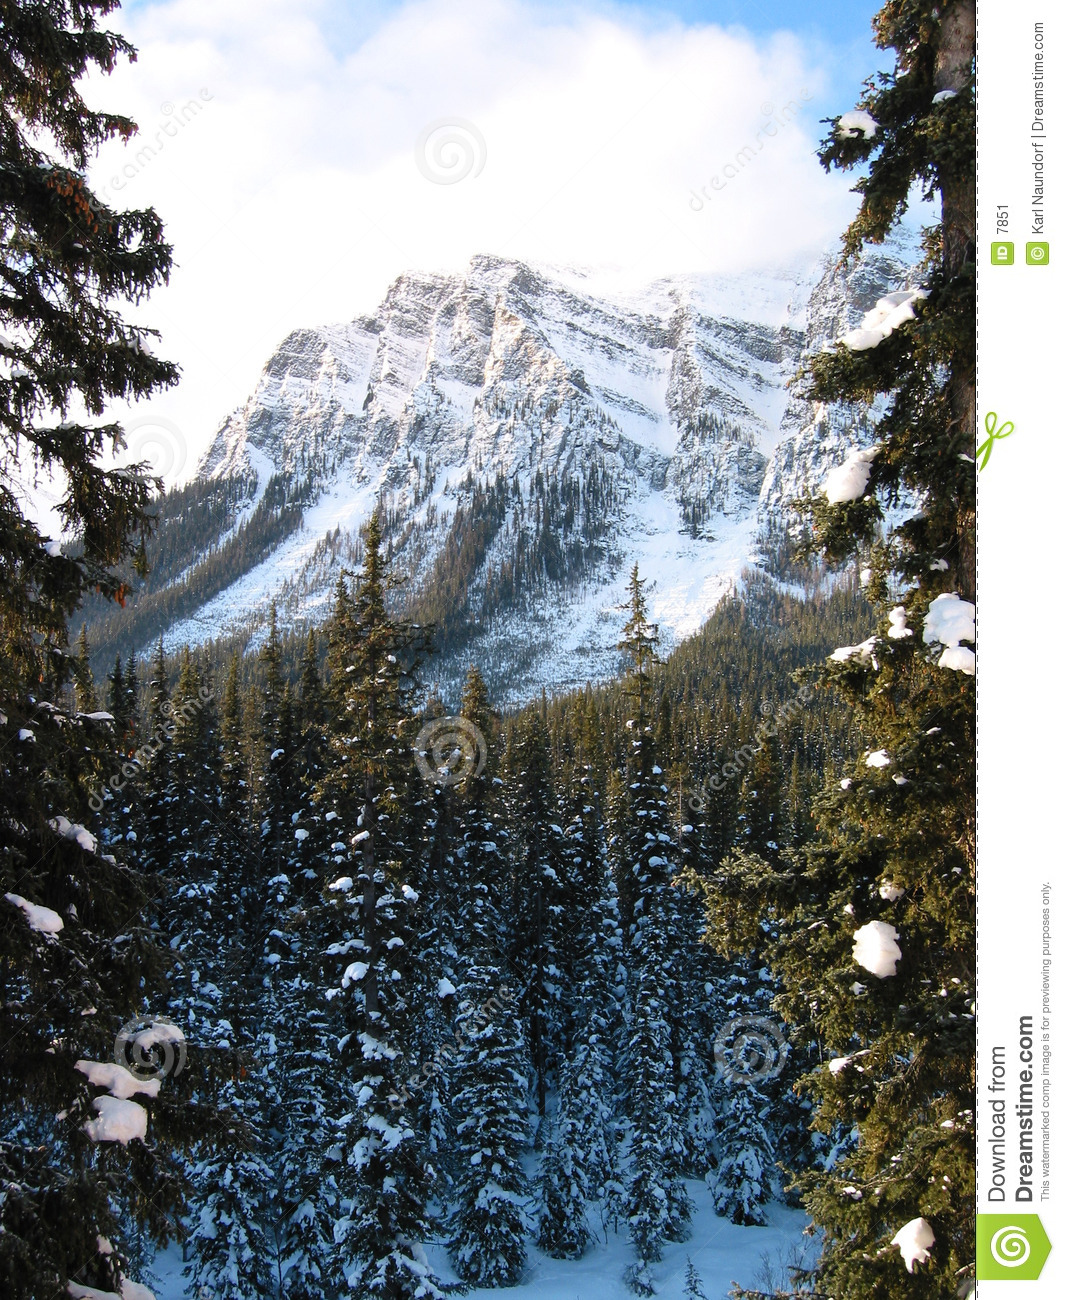 Majestic mountain with a snowy forest 2